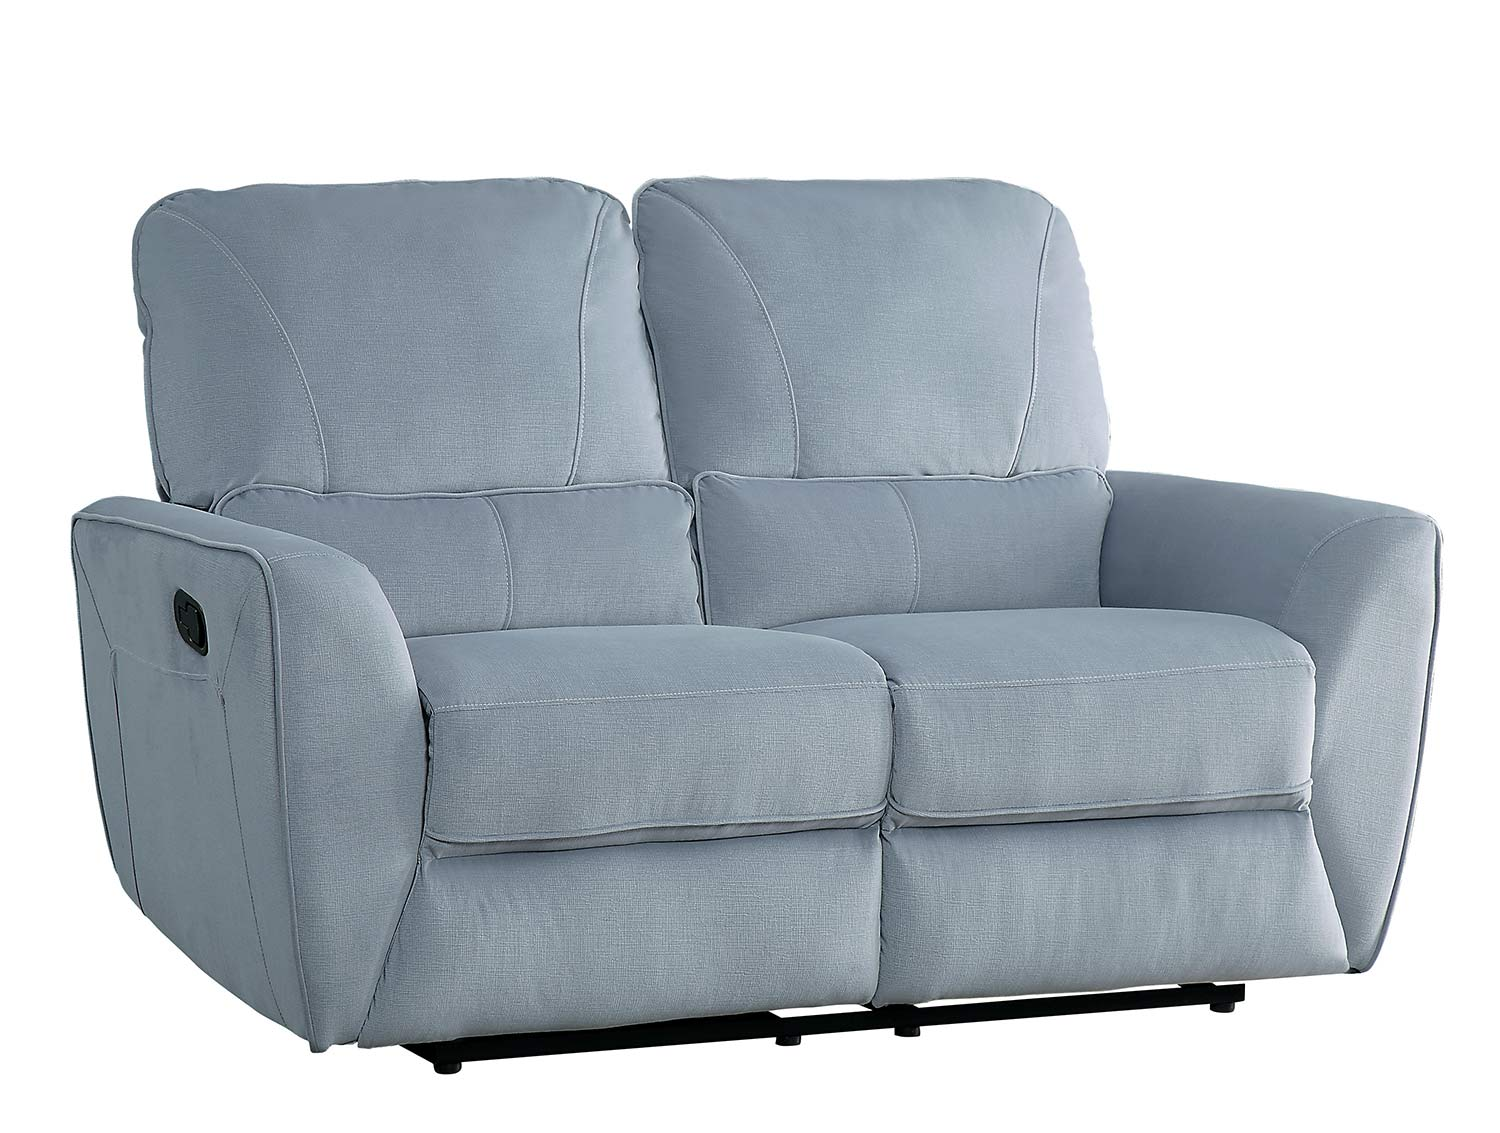 Homelegance Dowling Double Reclining Love Seat - Light Gray